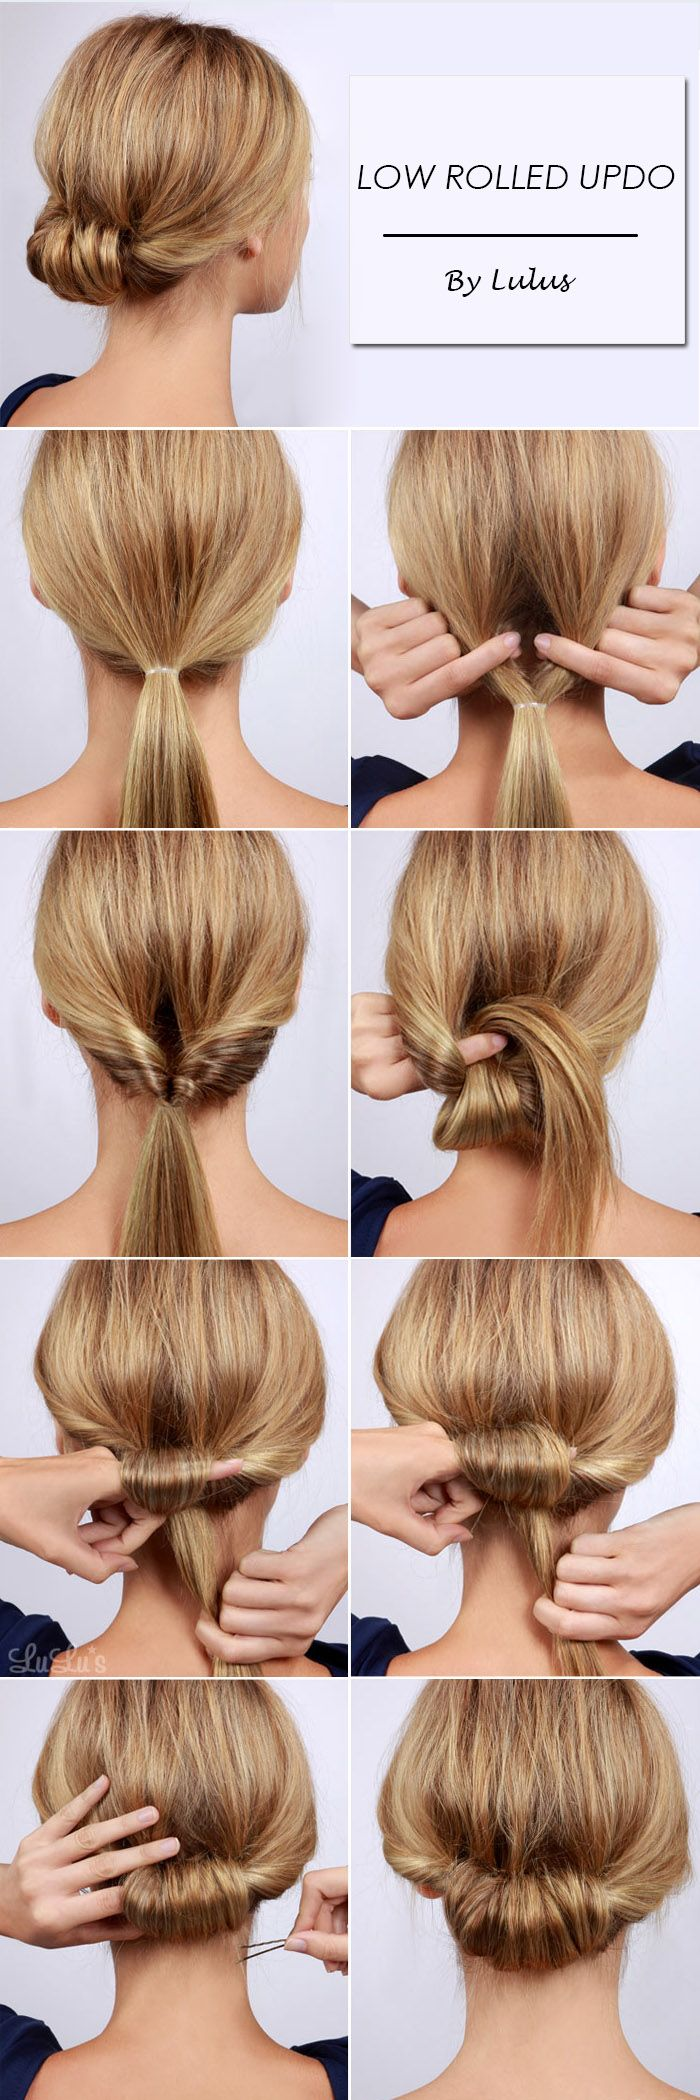 Simple but Chic Low Rolled Updo for Summer 2017